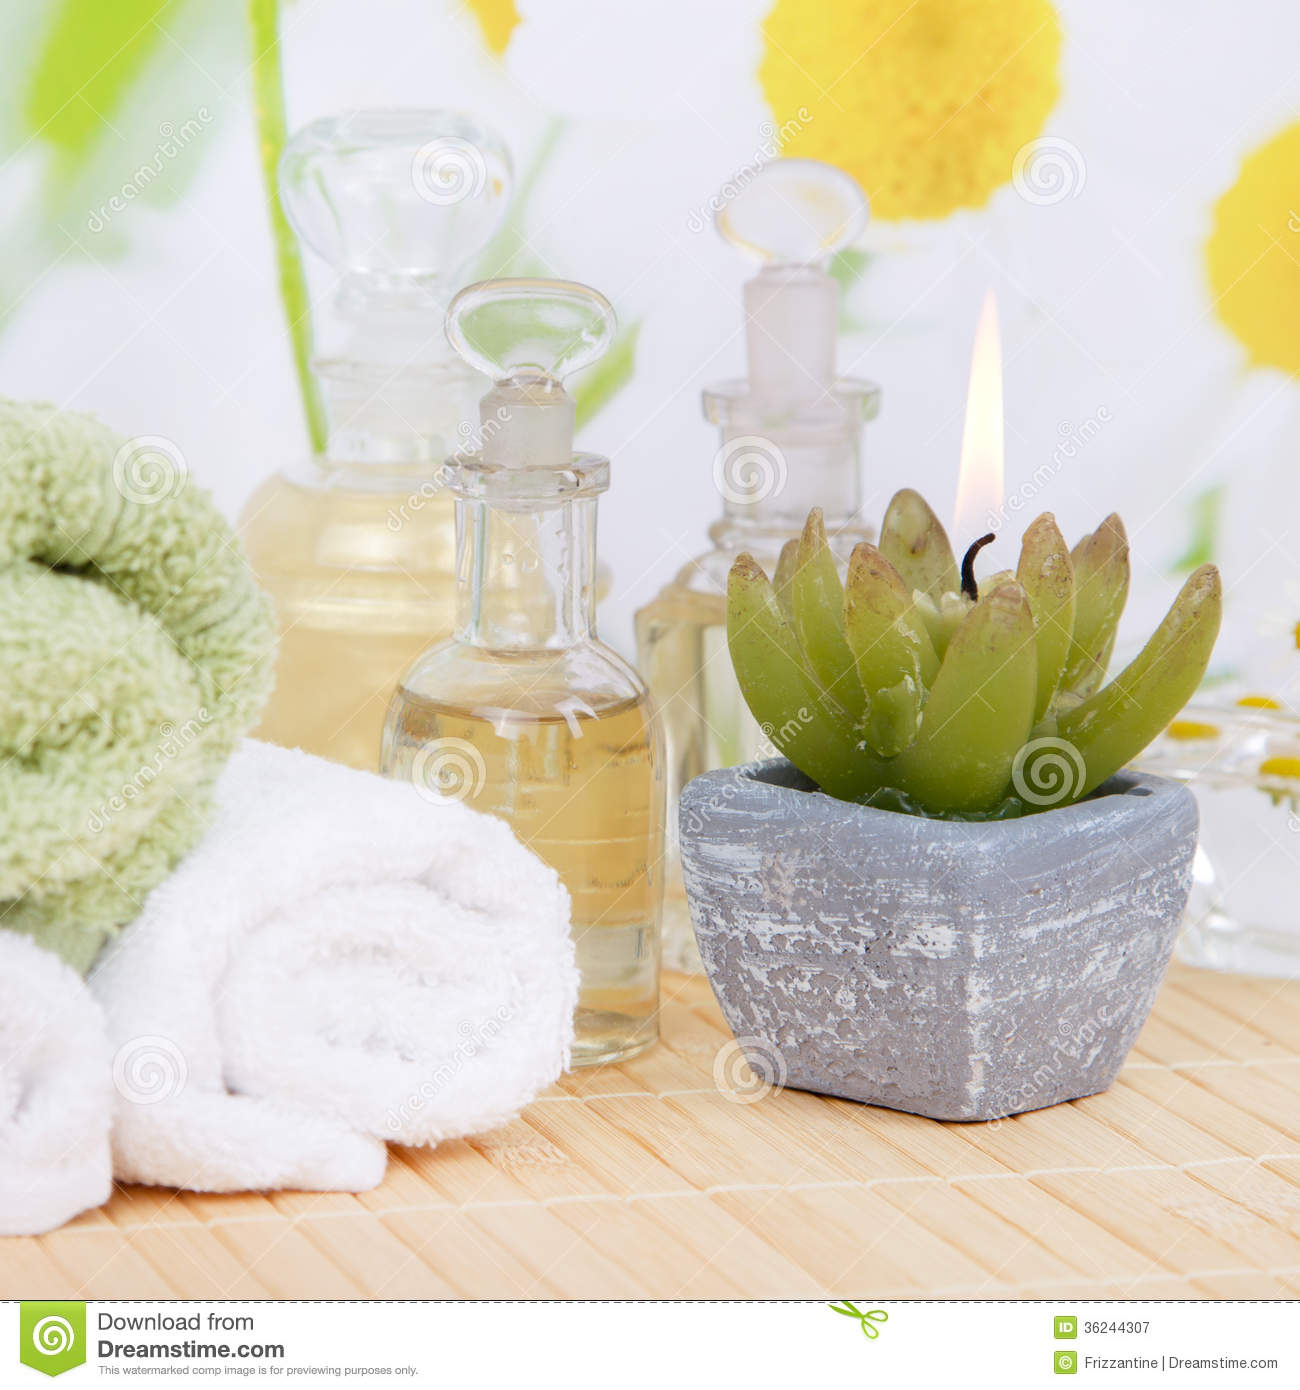 oil and chamomile - spa decoration in white and yellow royalty